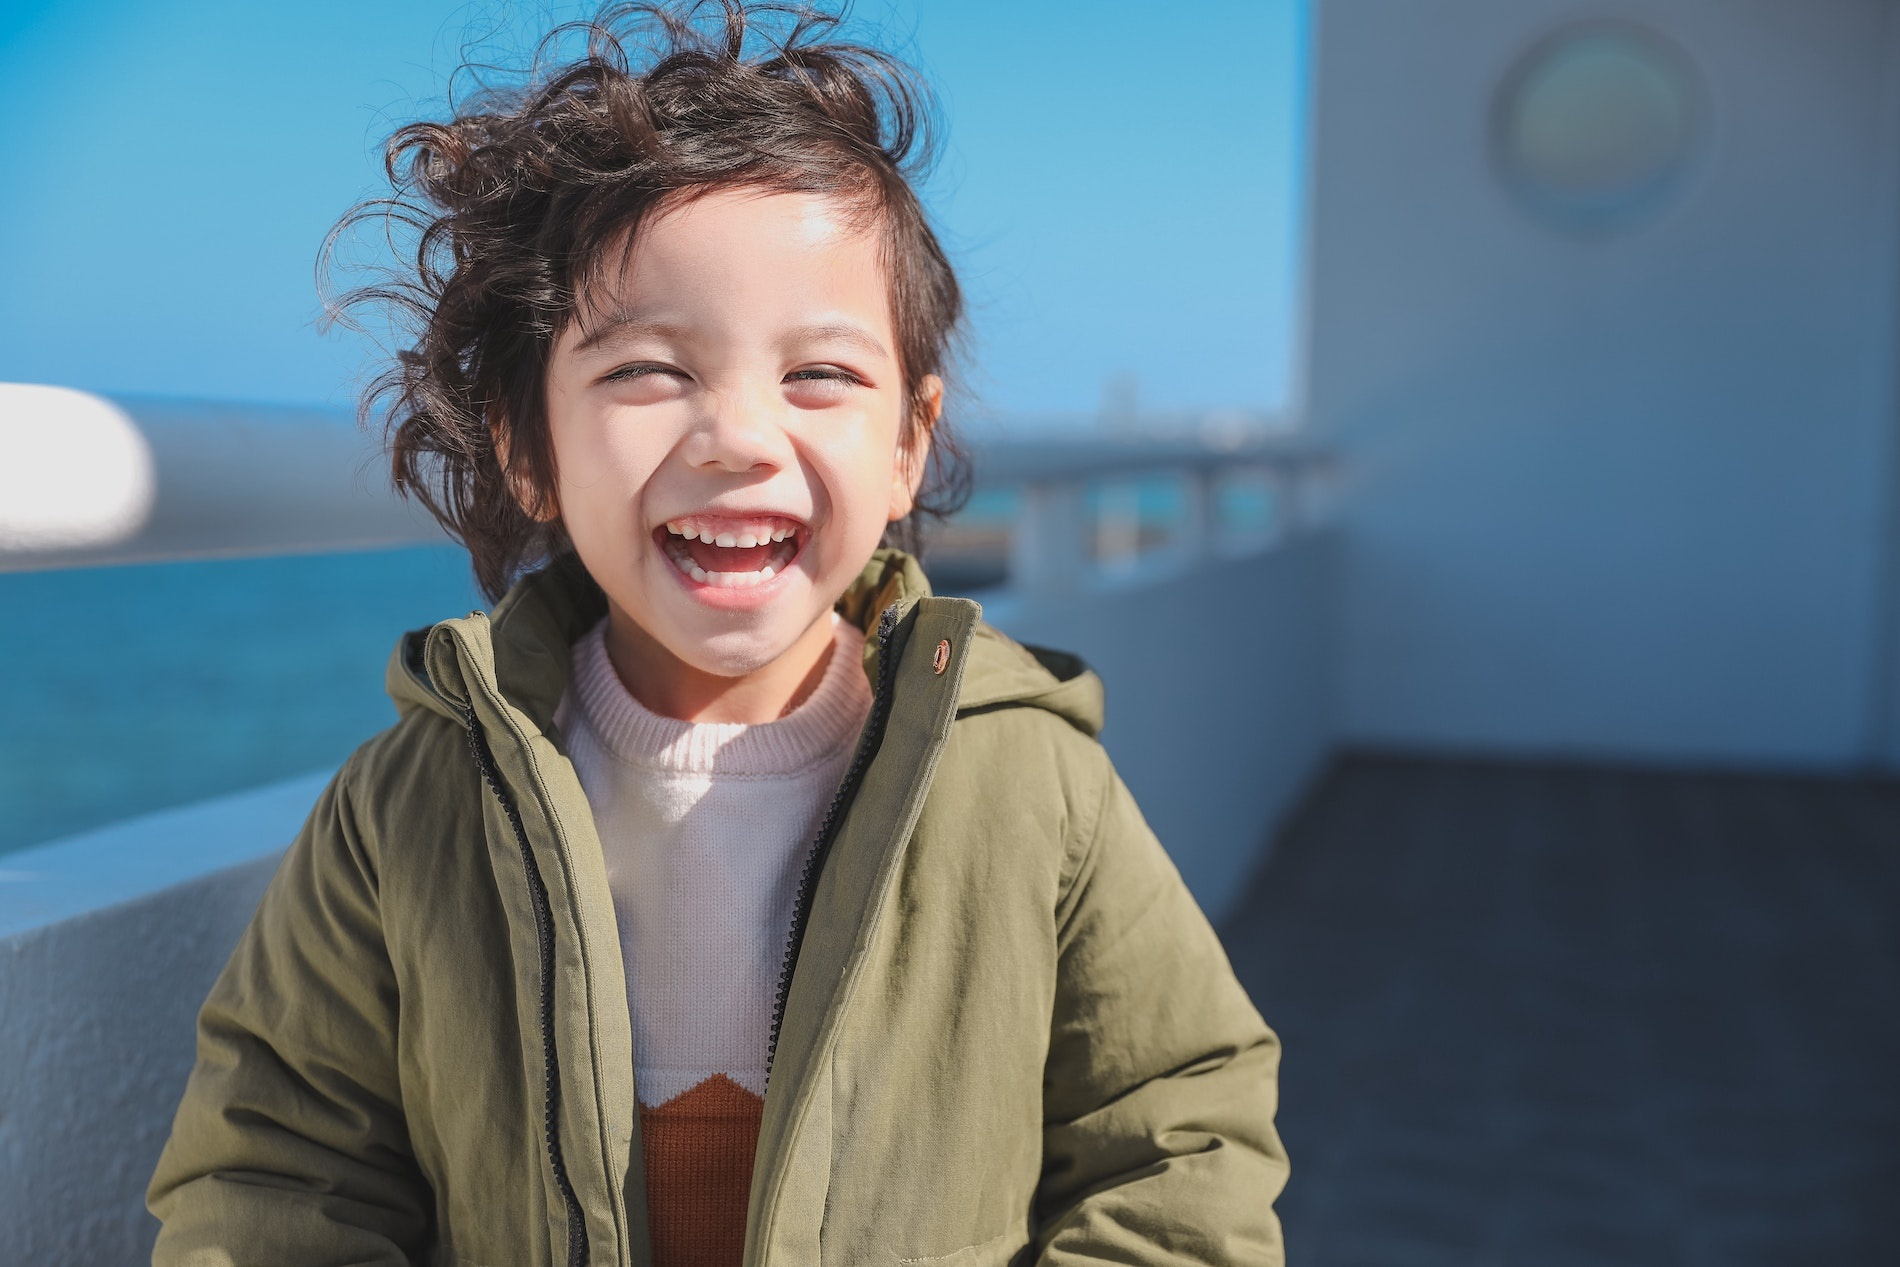 7 Ways Your Child Can Make a Good First Impression on a Casting Director